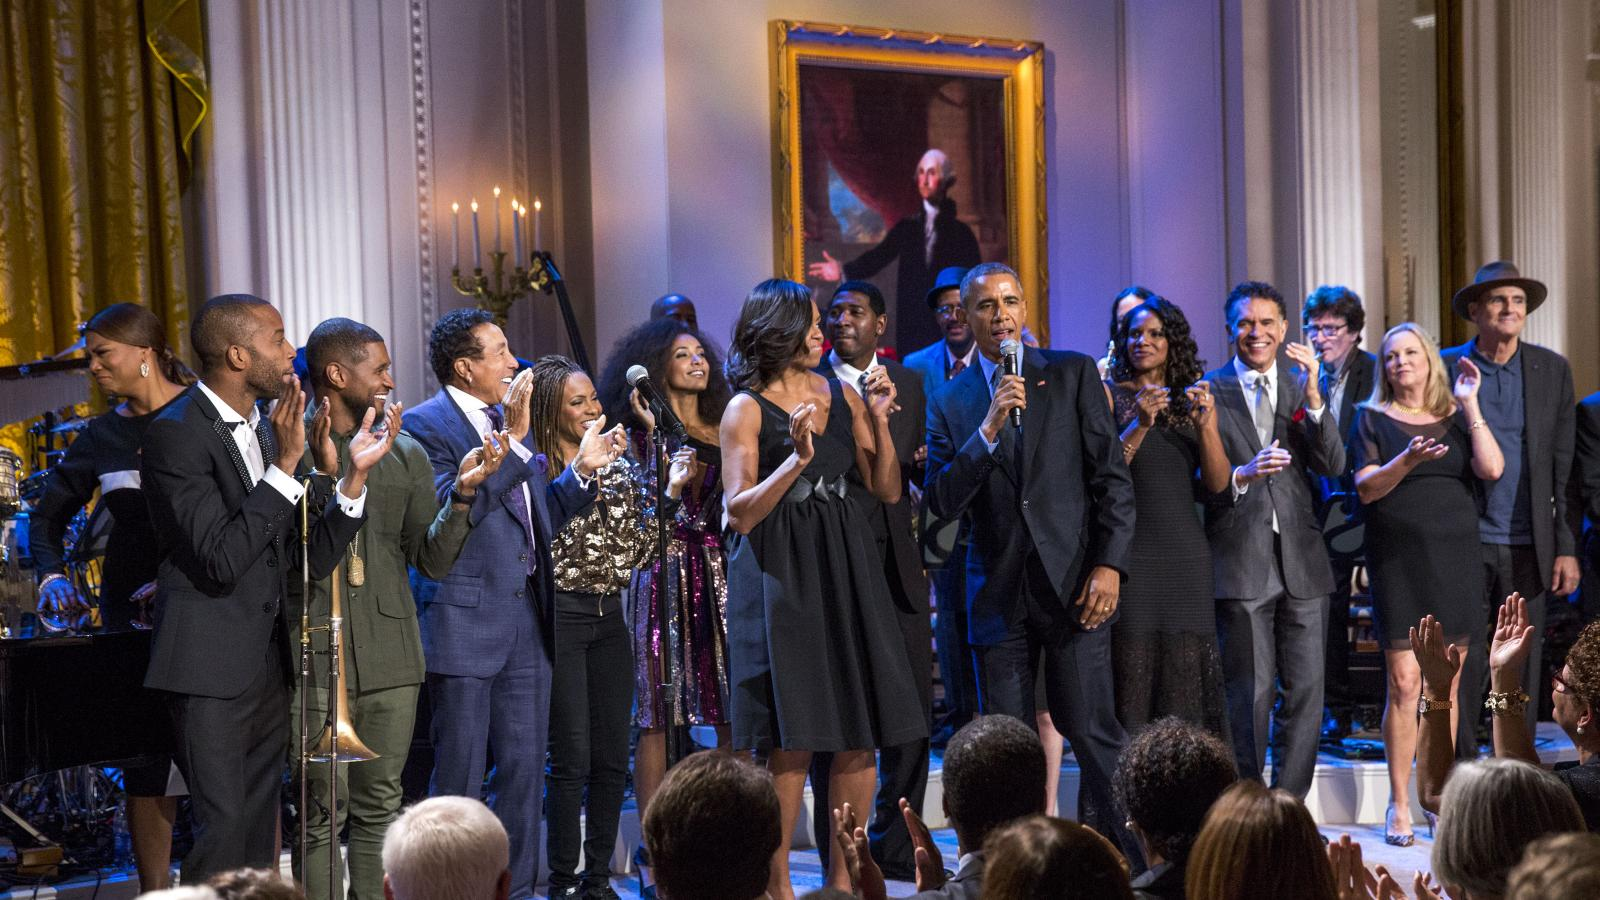 President Obama on stage at the White House with musical performers.